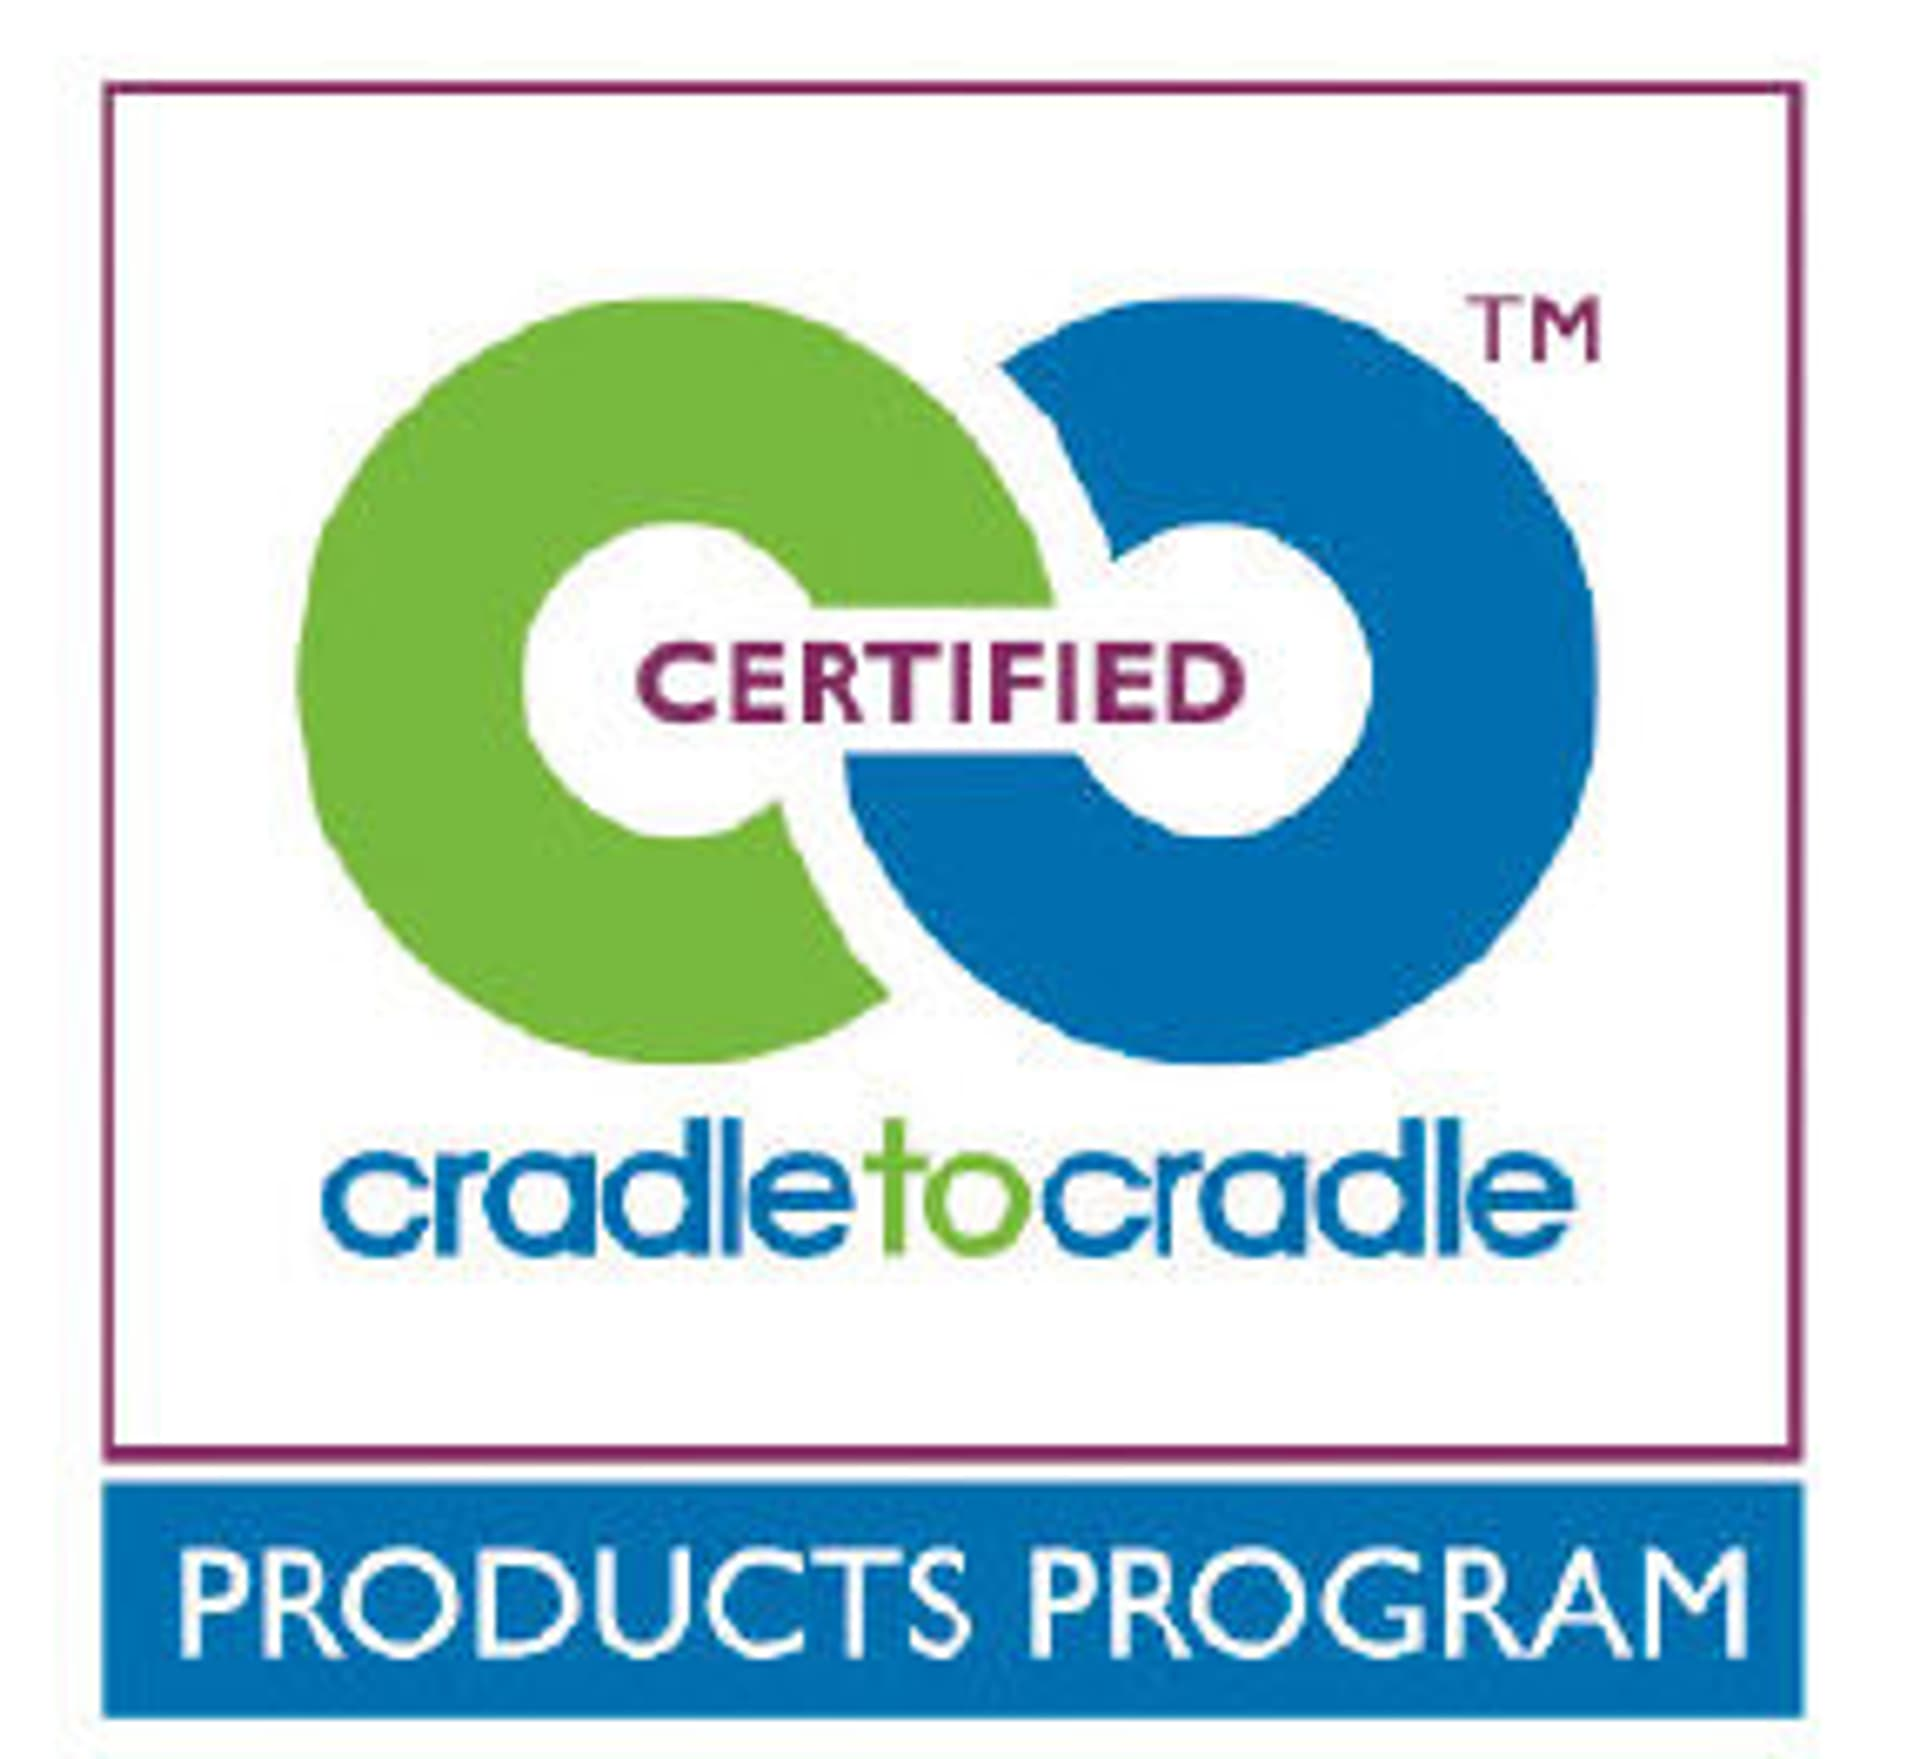 Mode cradletocradle